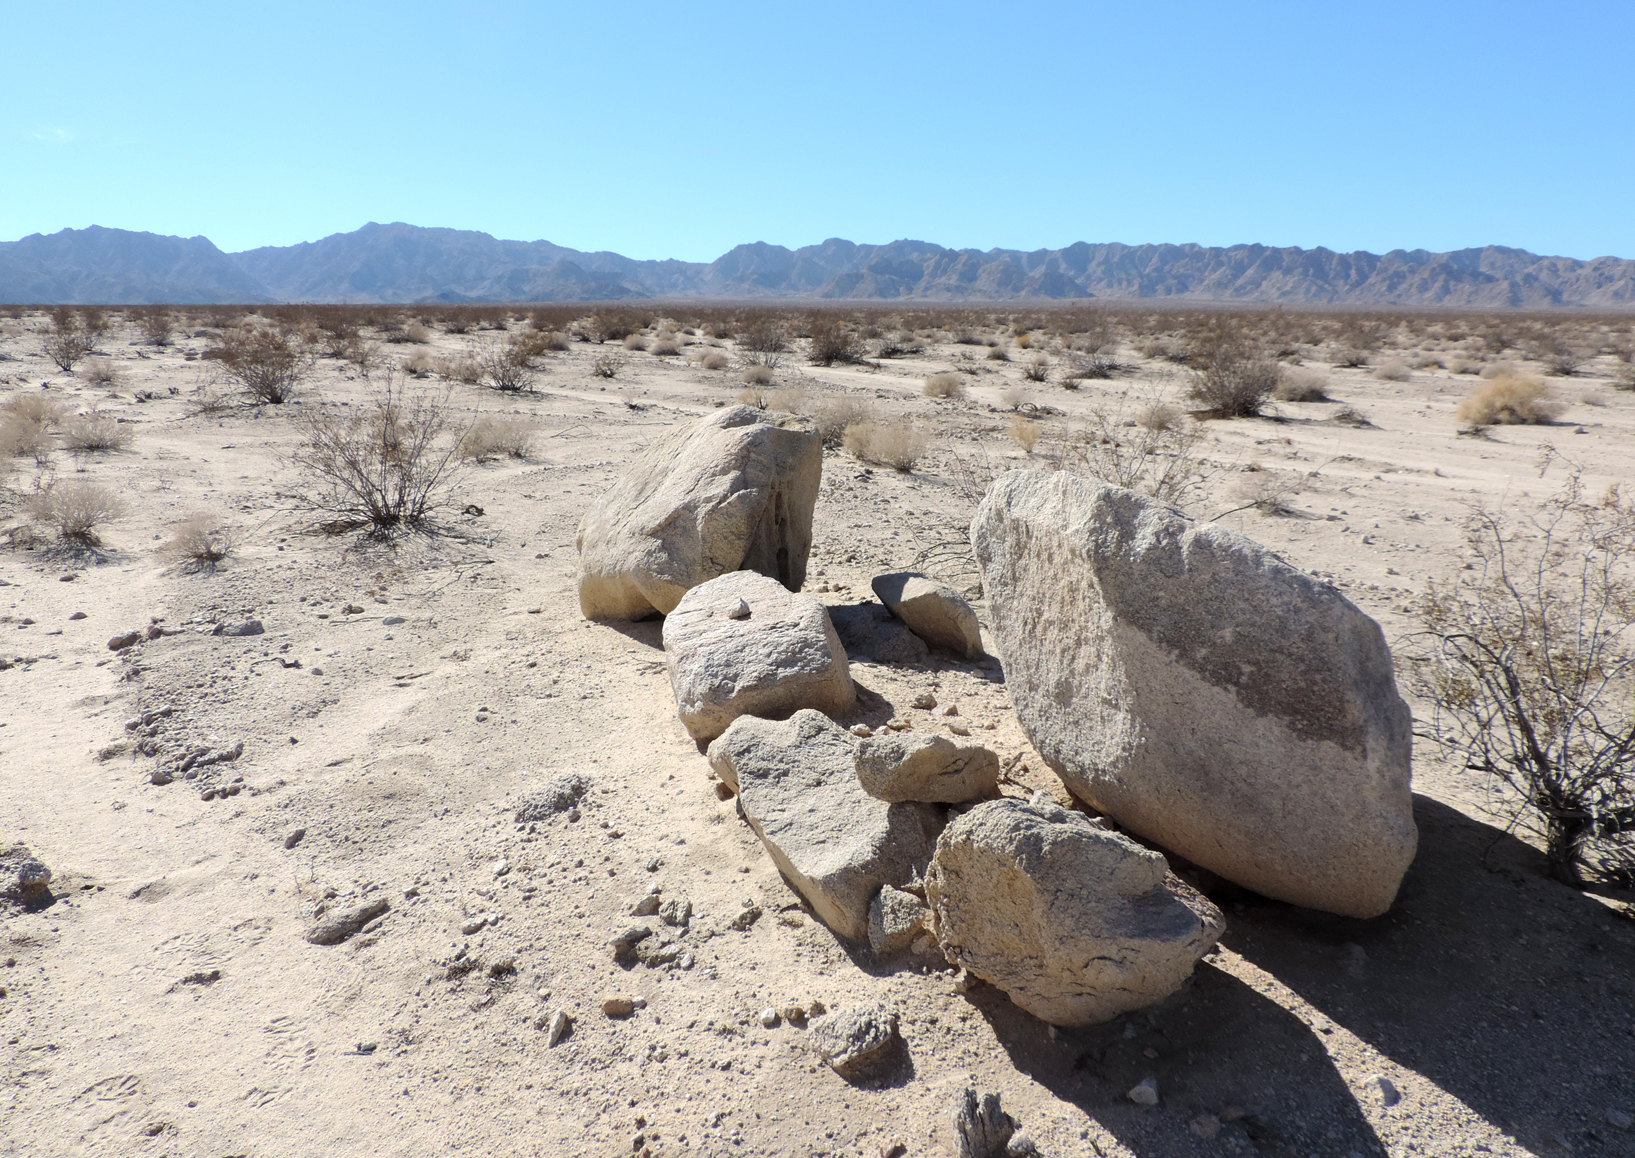 The white granitic bajada of the Cadiz Valley, with Calumet and Sheephole Mountains in the distance.  Mojave Desert, California.